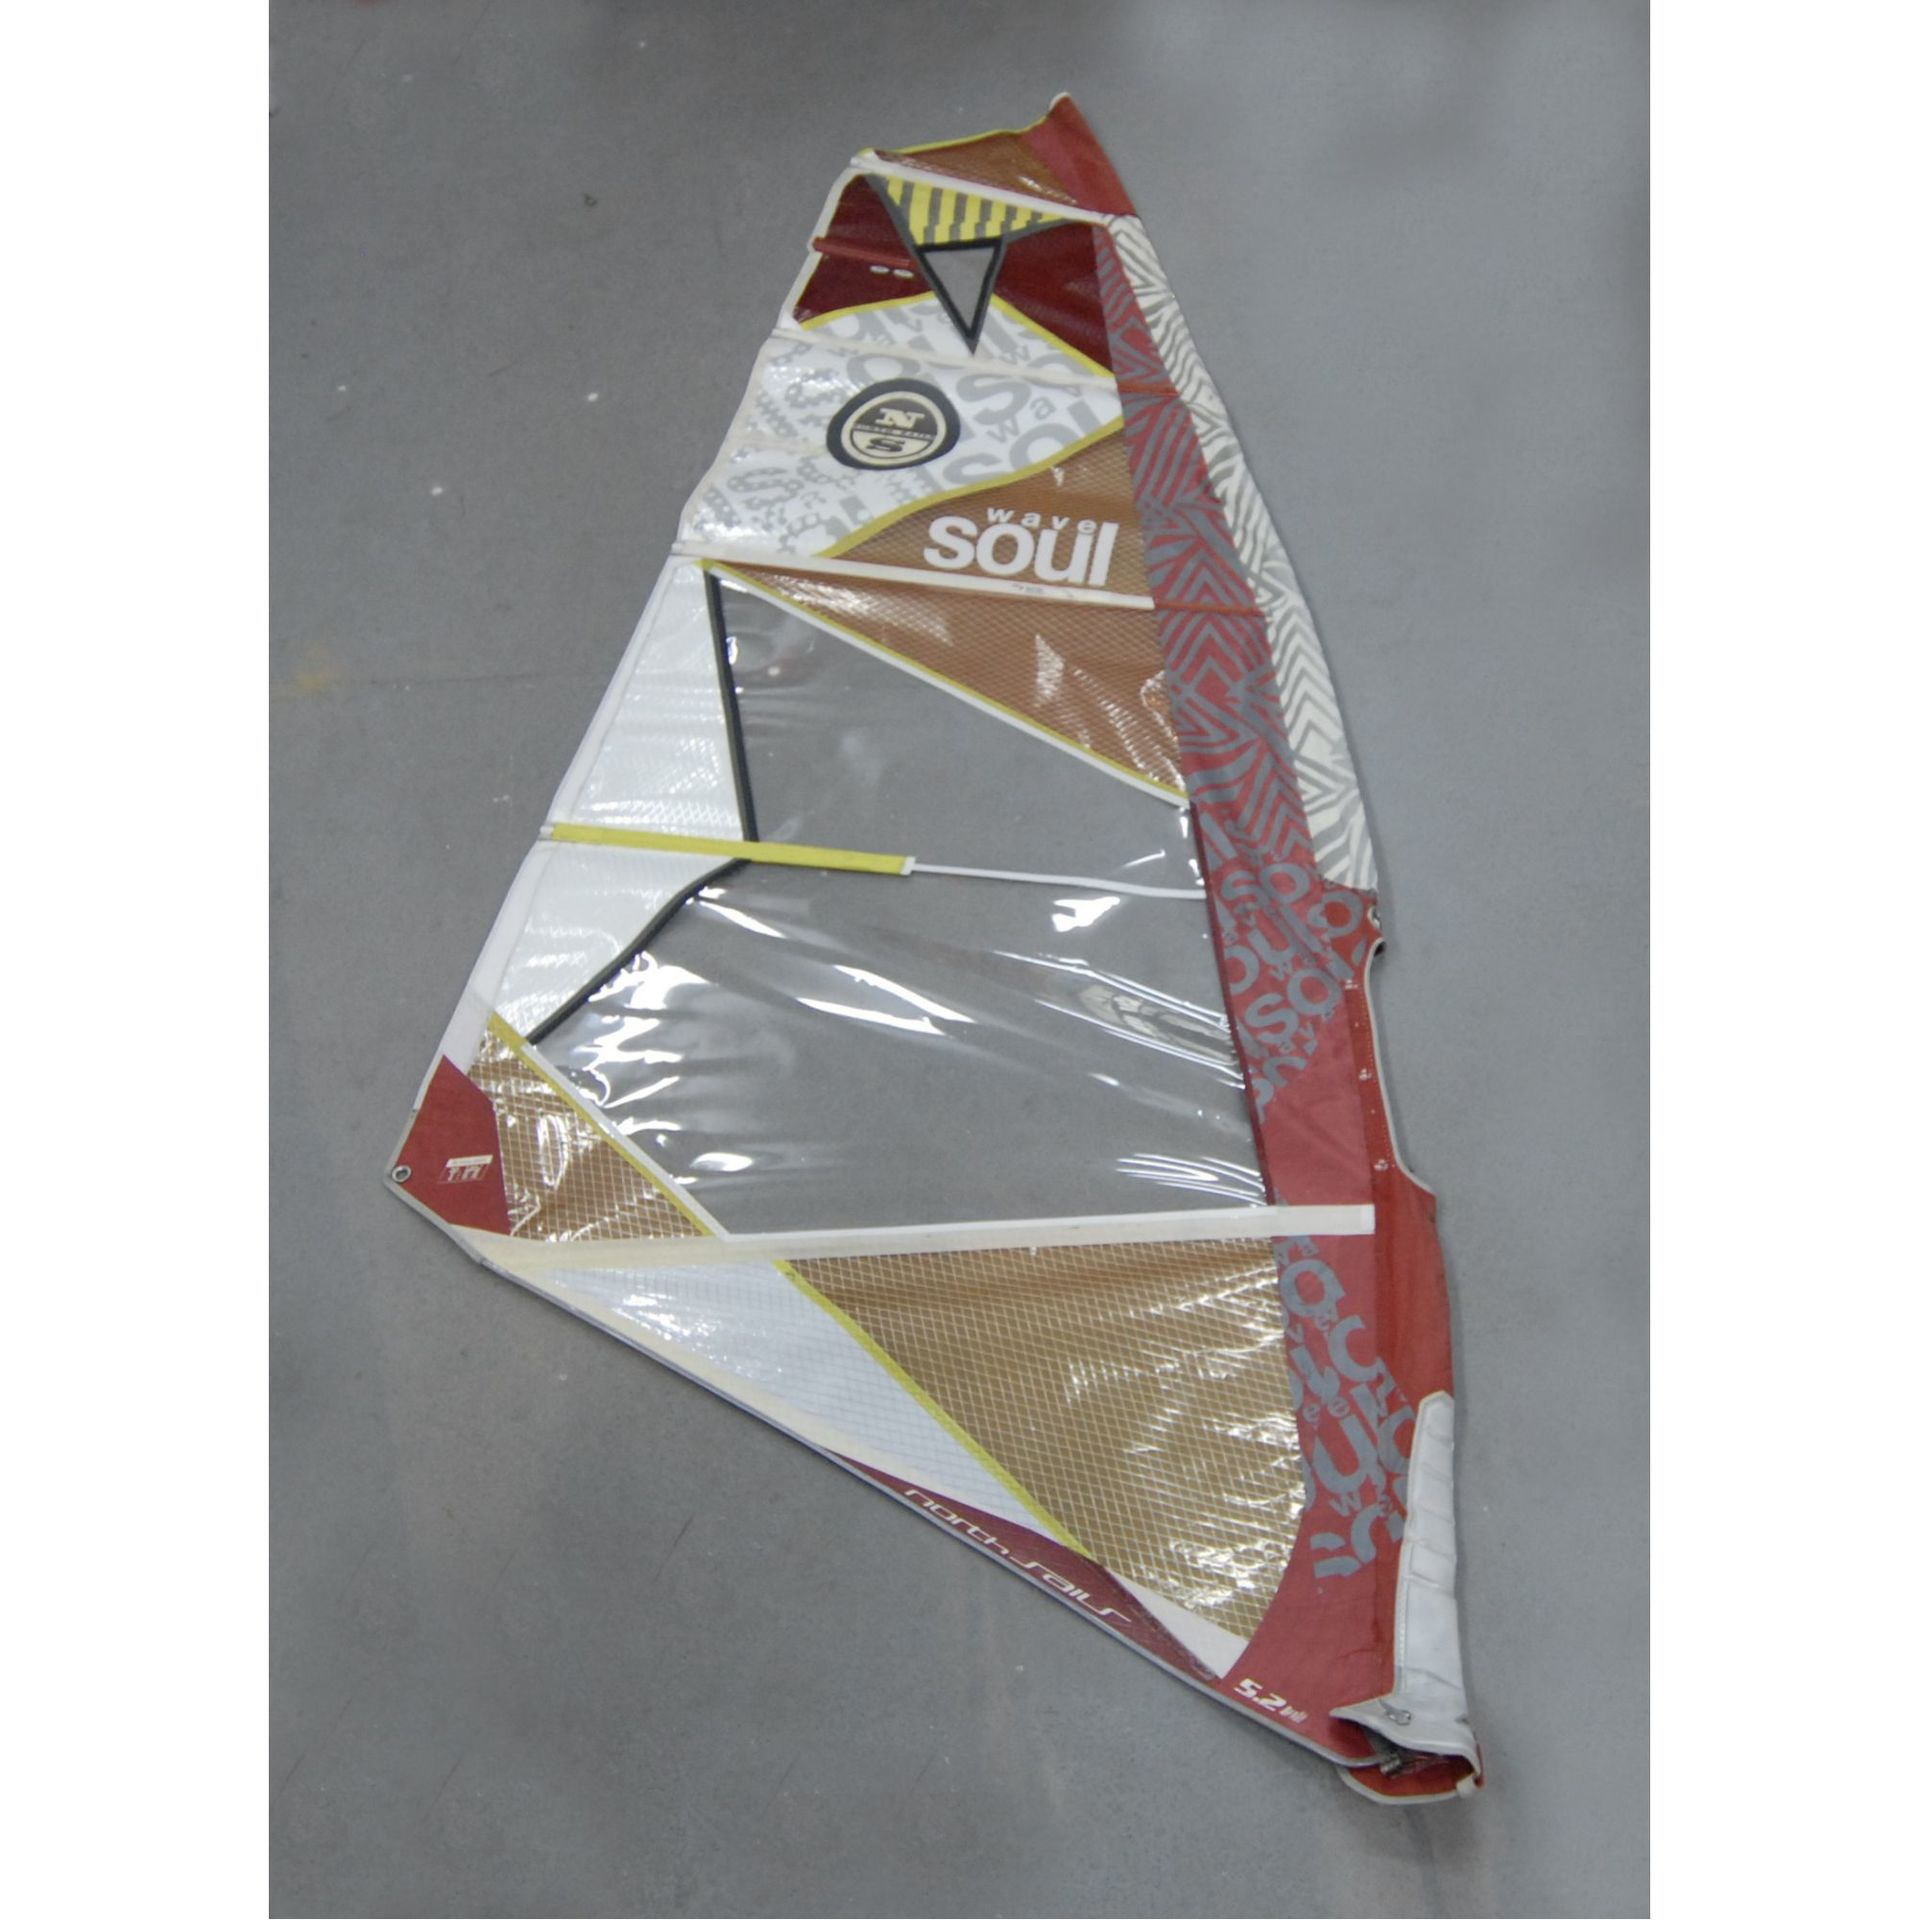 ŻAGIEL WINDSURFINGOWY NORTH SAILS SOUL 5.2 - WAVE|FREESTYLE  (155216)